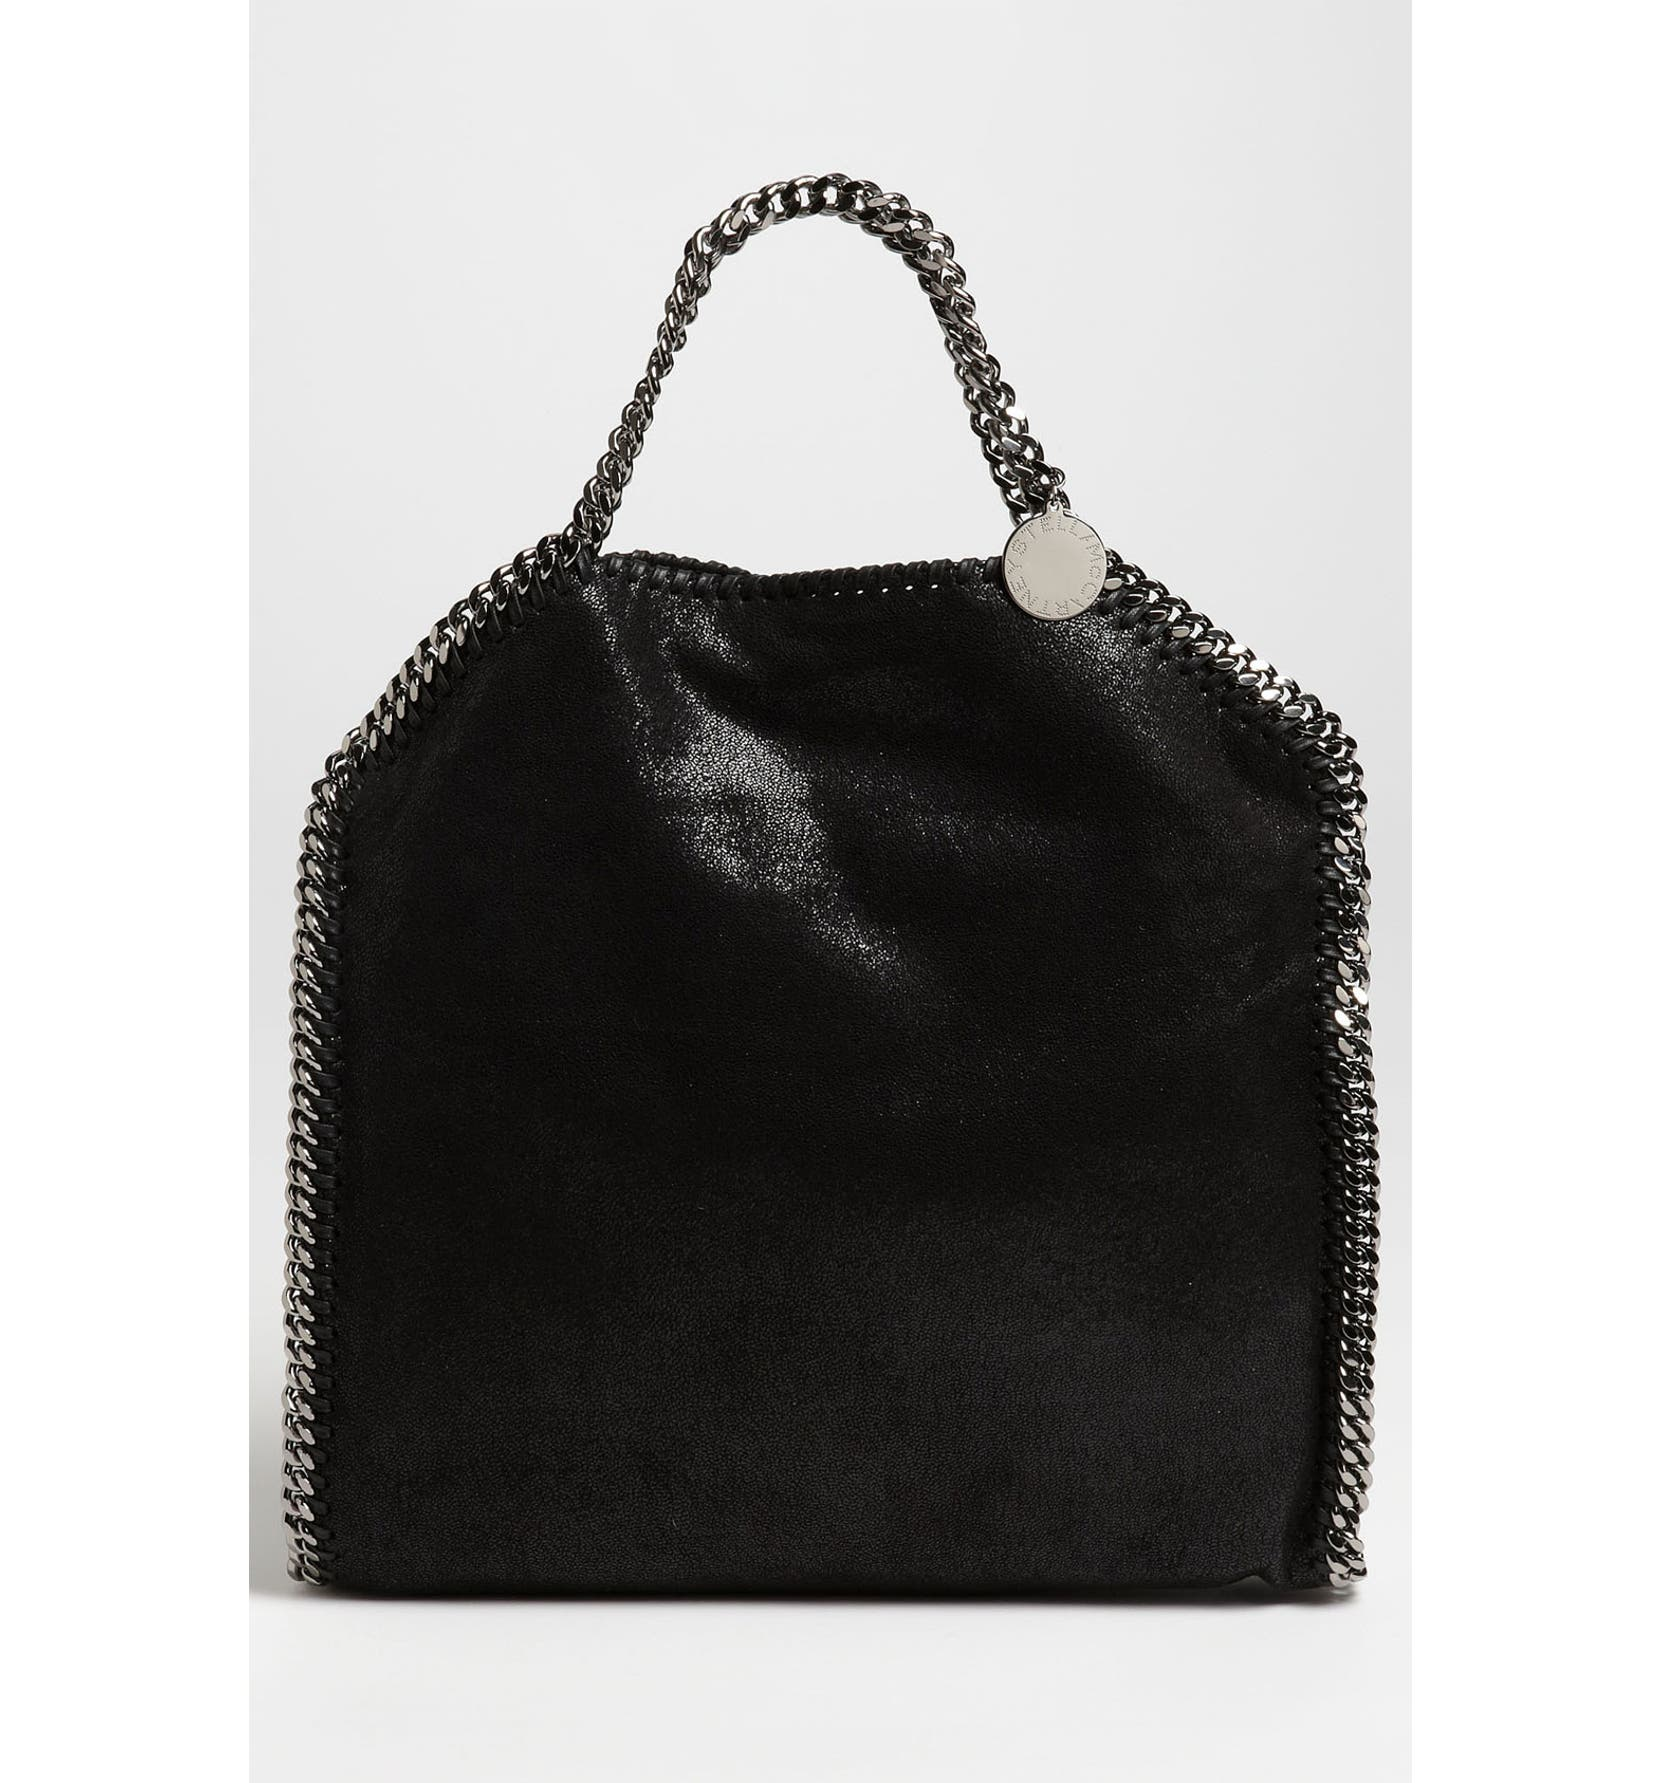 Stella McCartney  Falabella - Shaggy Deer  Faux Leather Foldover Tote  31683f7749ae0